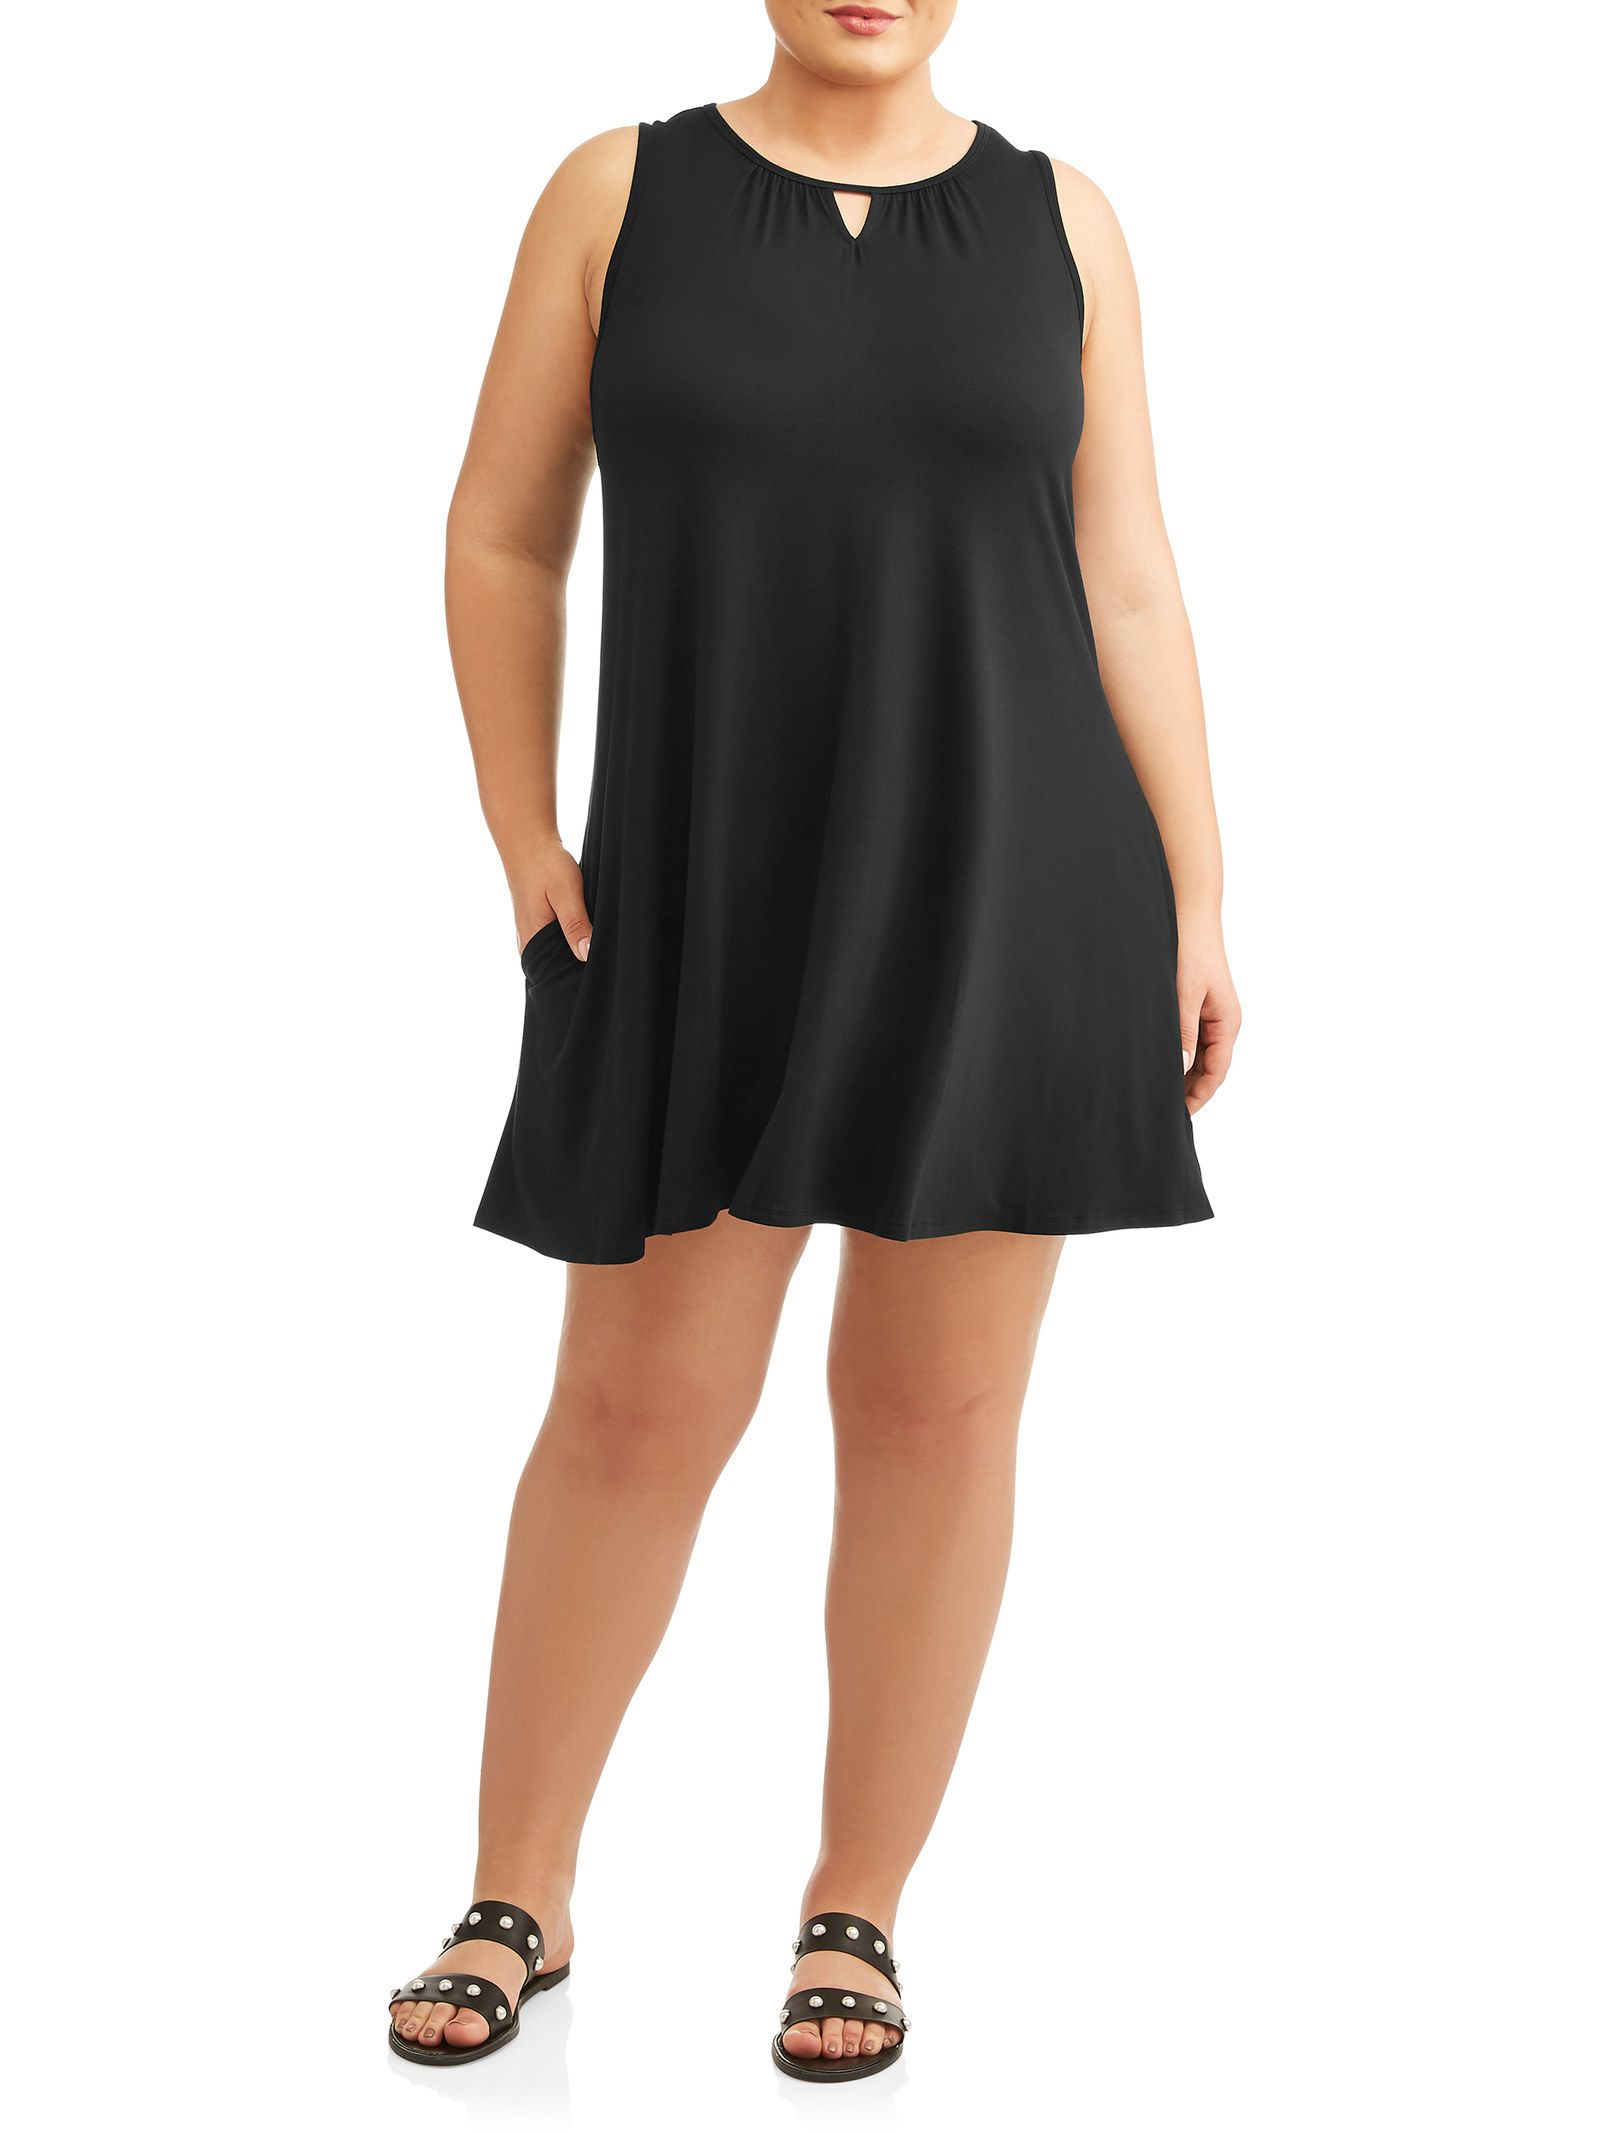 27 Cute Pieces Of Clothing From Walmart For People Who Only Wear Black Sleeveless Knit Dress Knit Dress Womens Sleeveless Dress [ 2133 x 1600 Pixel ]